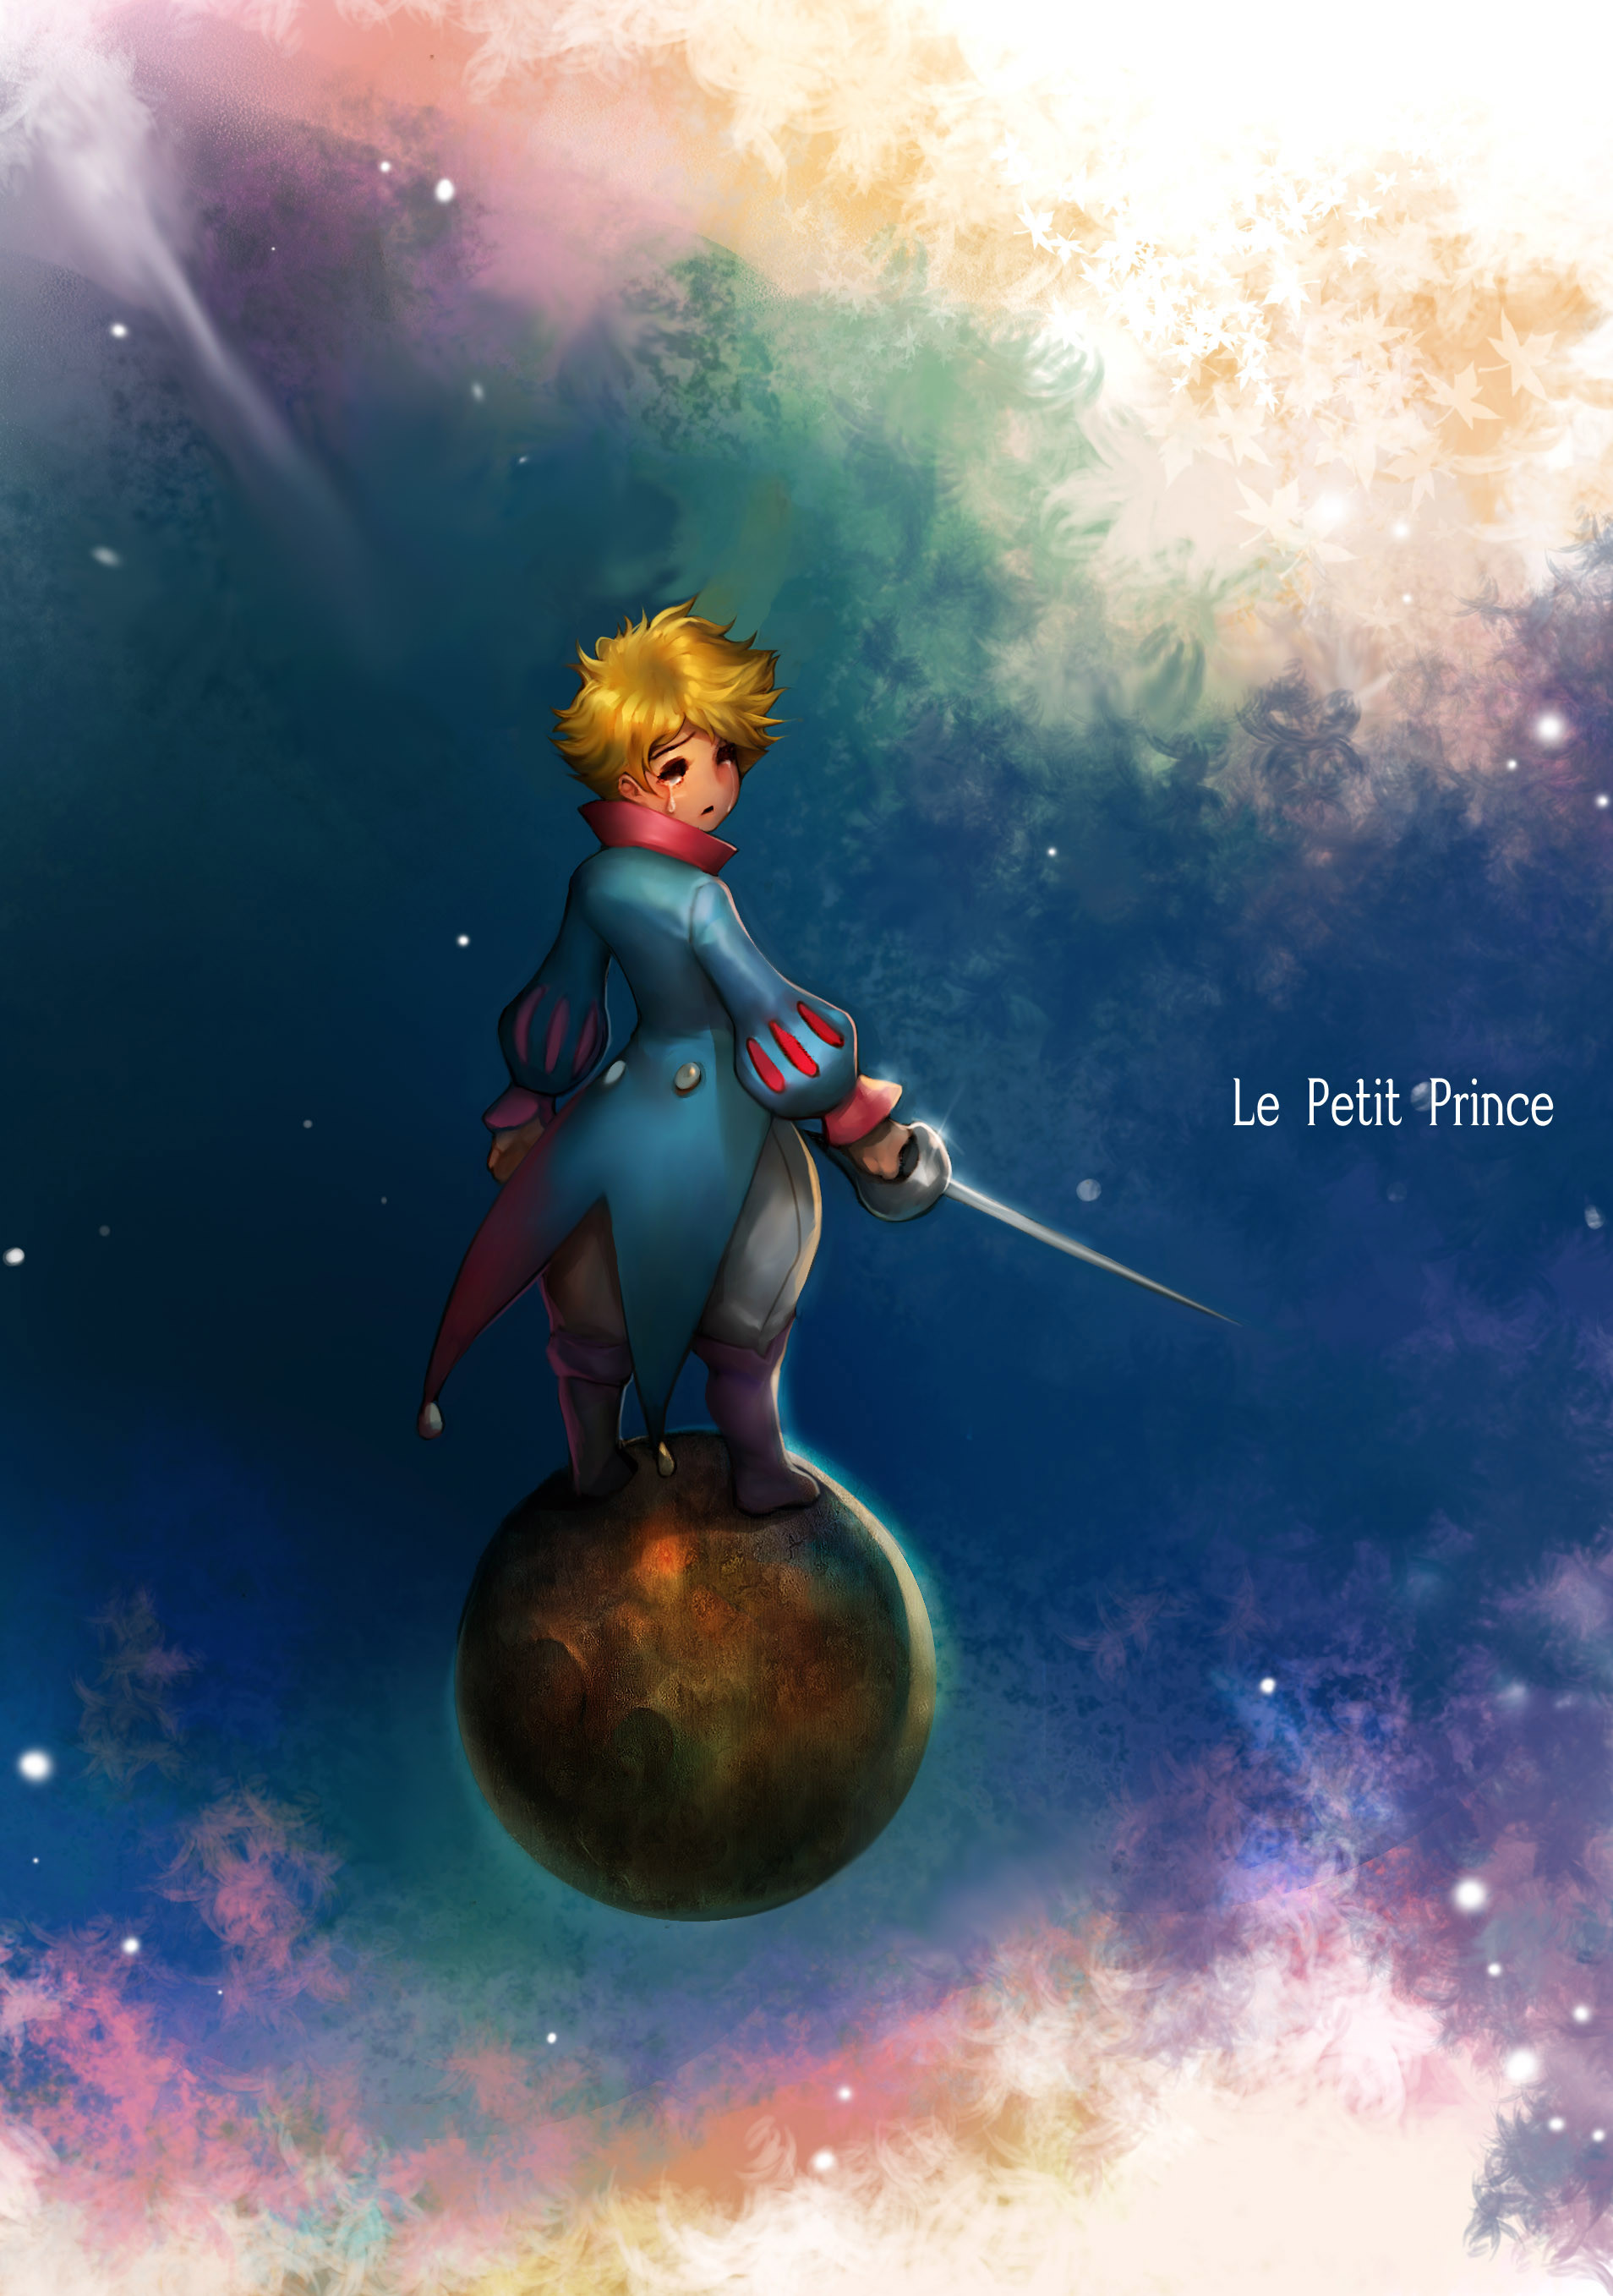 View Fullsize The Little Prince (The Little Prince) Image